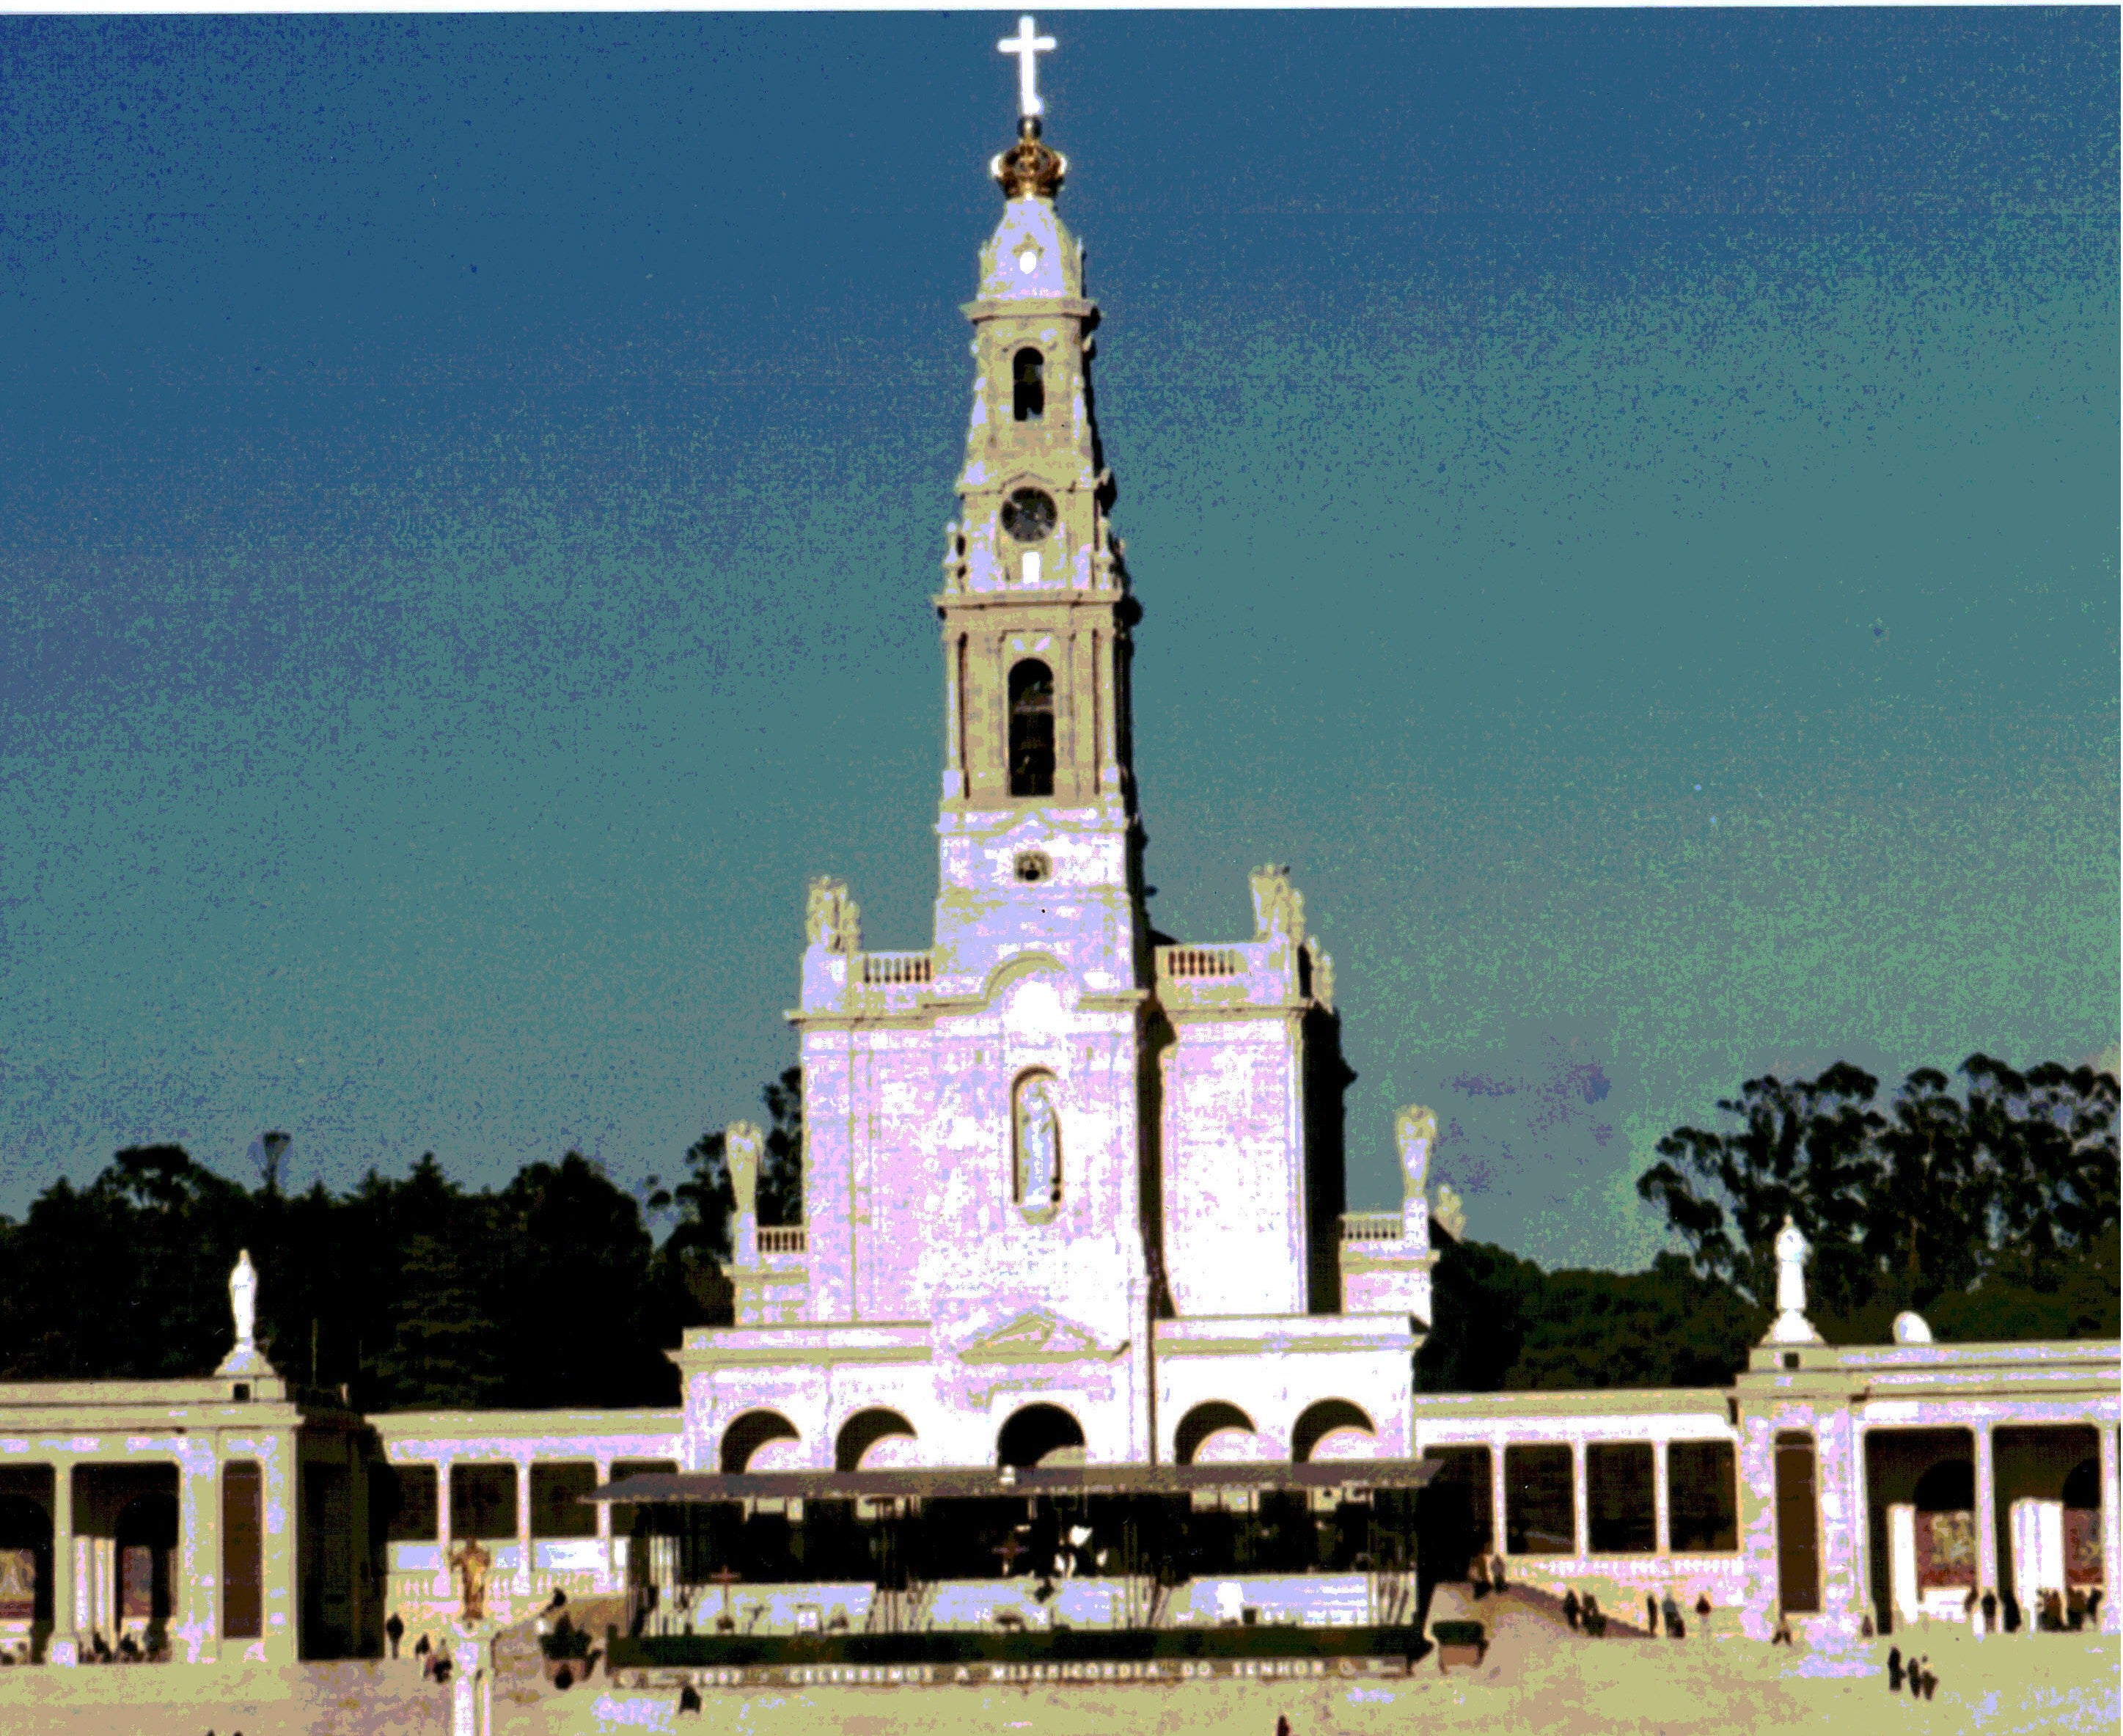 Building in Basilica of Our Lady of the Rosary of Fatima